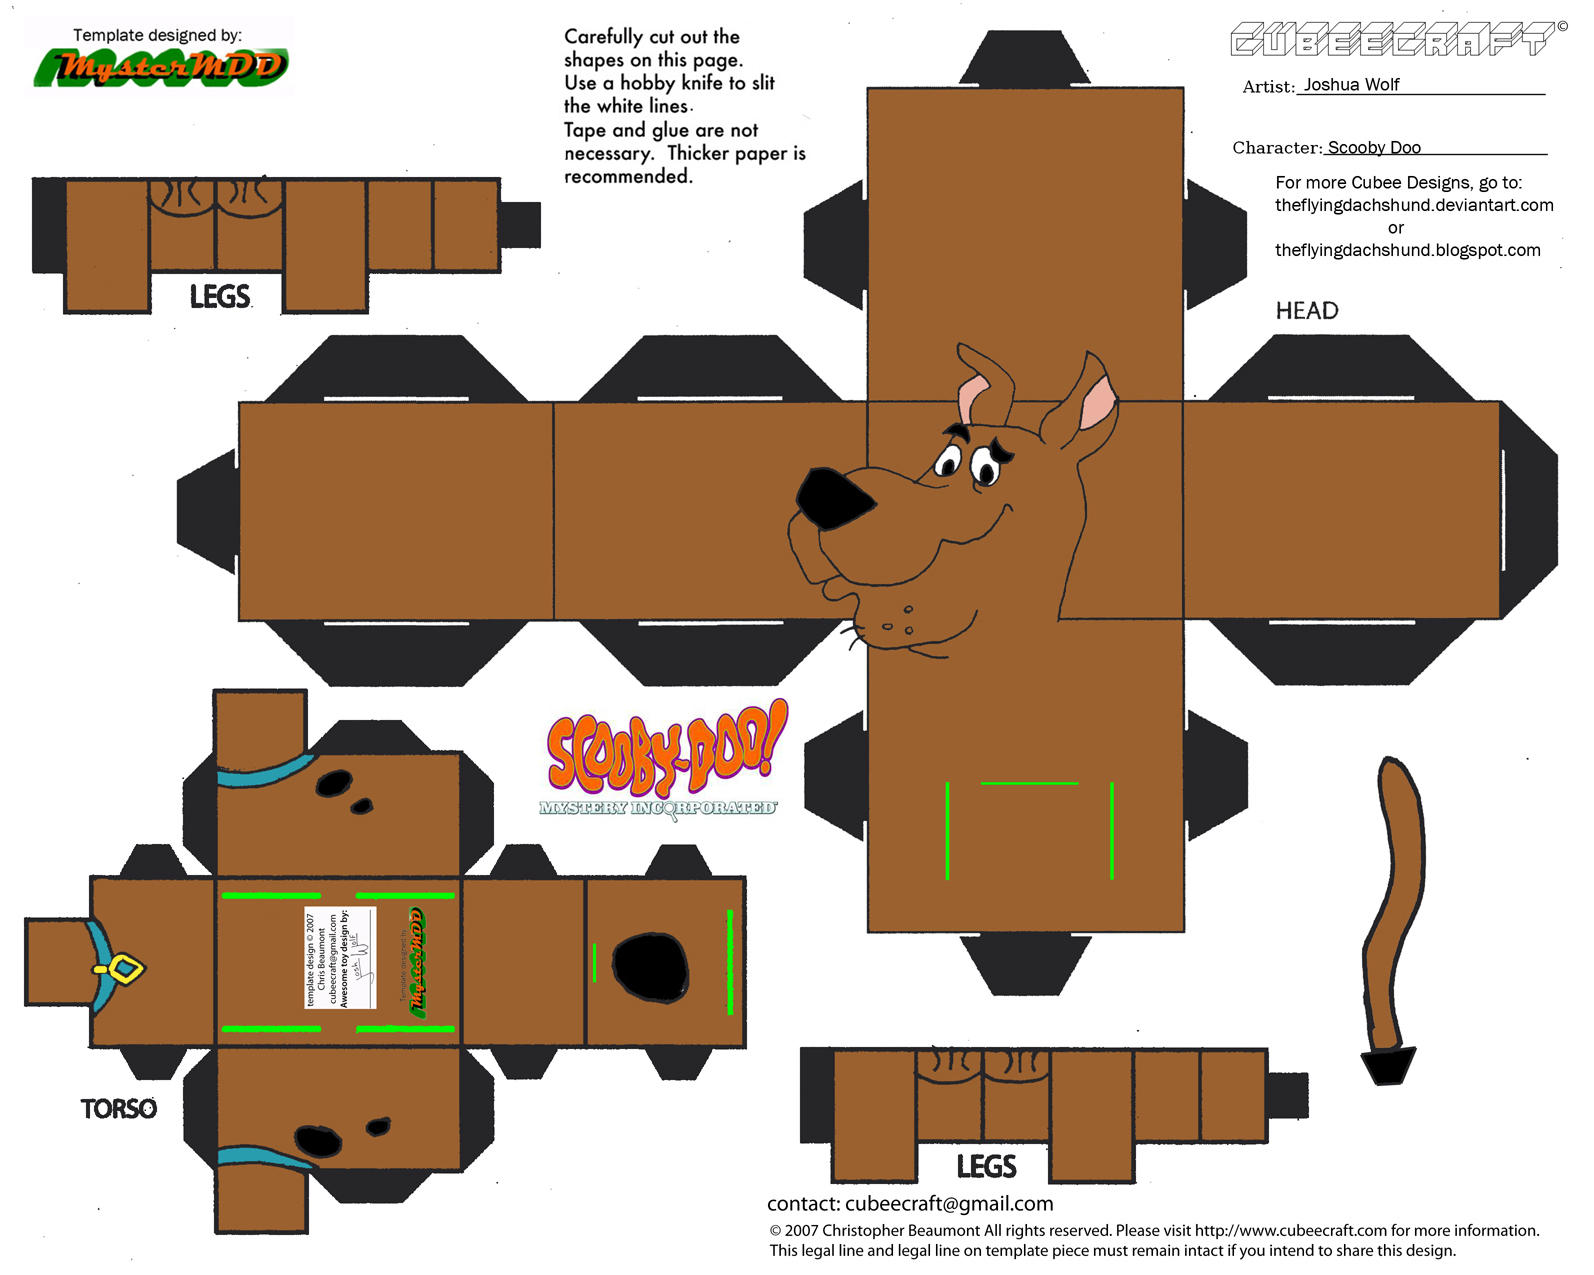 Sd1 scooby doo cubee by theflyingdachshund on deviantart for Scooby doo cake template